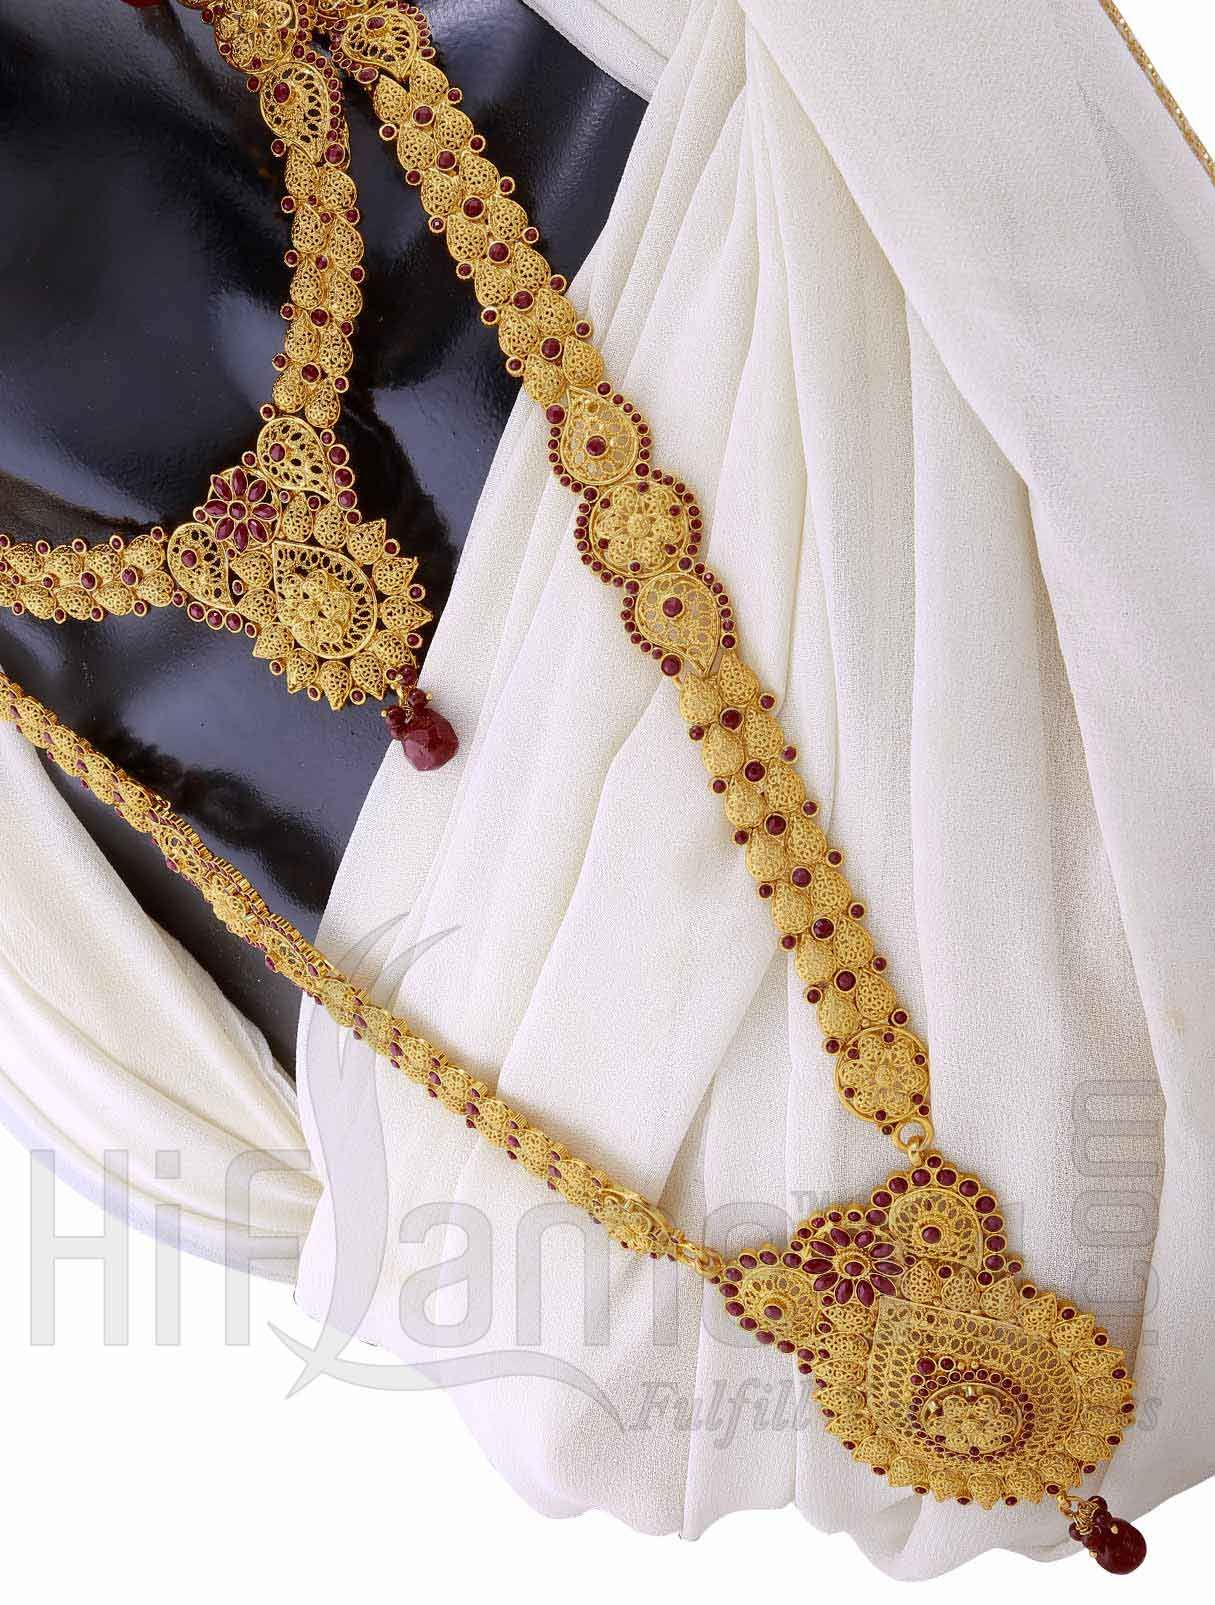 Bridal Jewellery Set with Gold and Maroon Beads | Indian Bridal ...